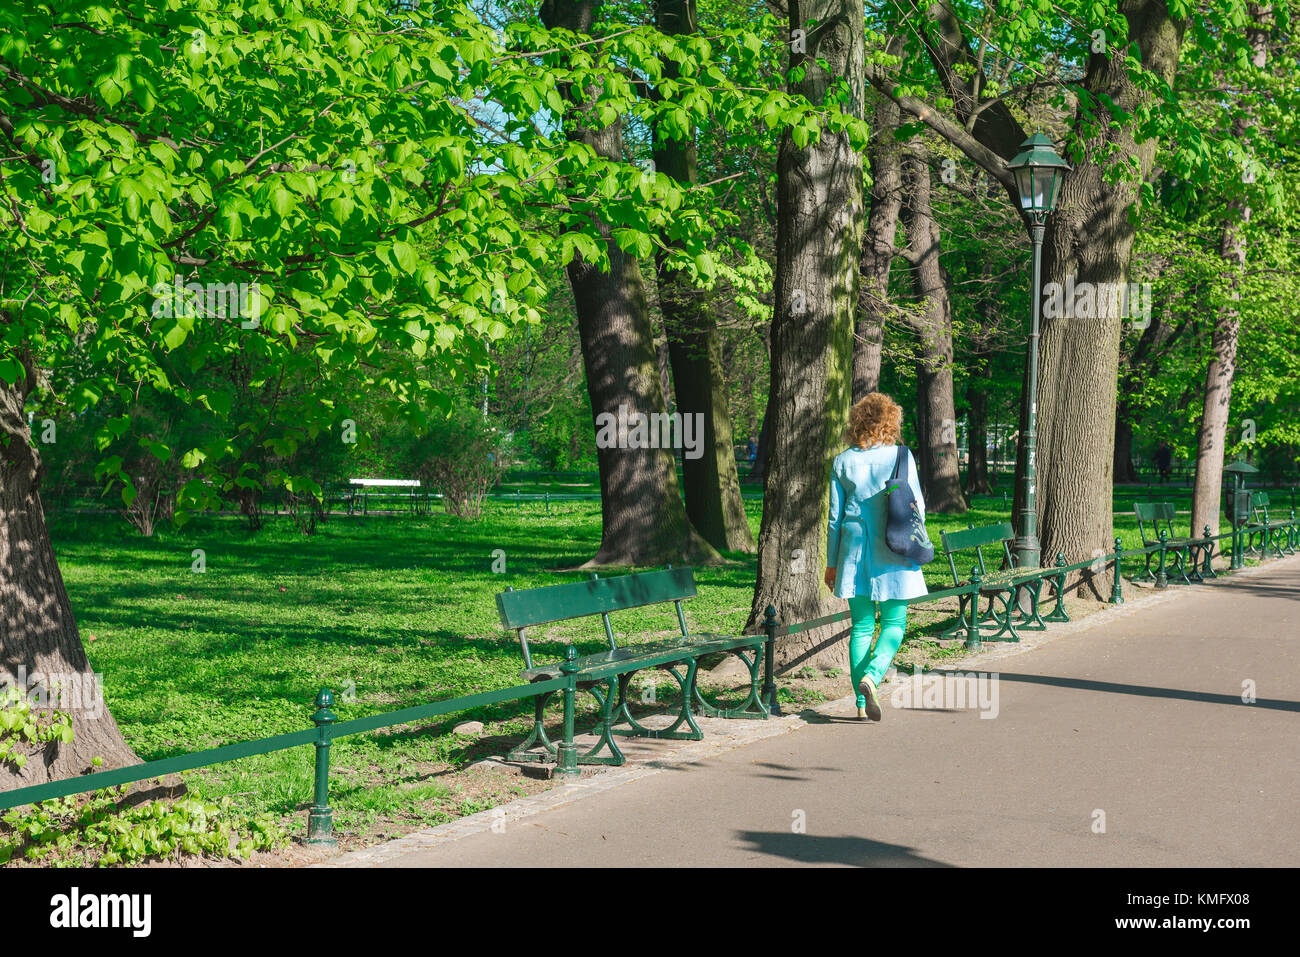 Woman walking alone, rear view of a woman wearing a blue raincoat walking through Planty Park in the center of Krakow, - Stock Image